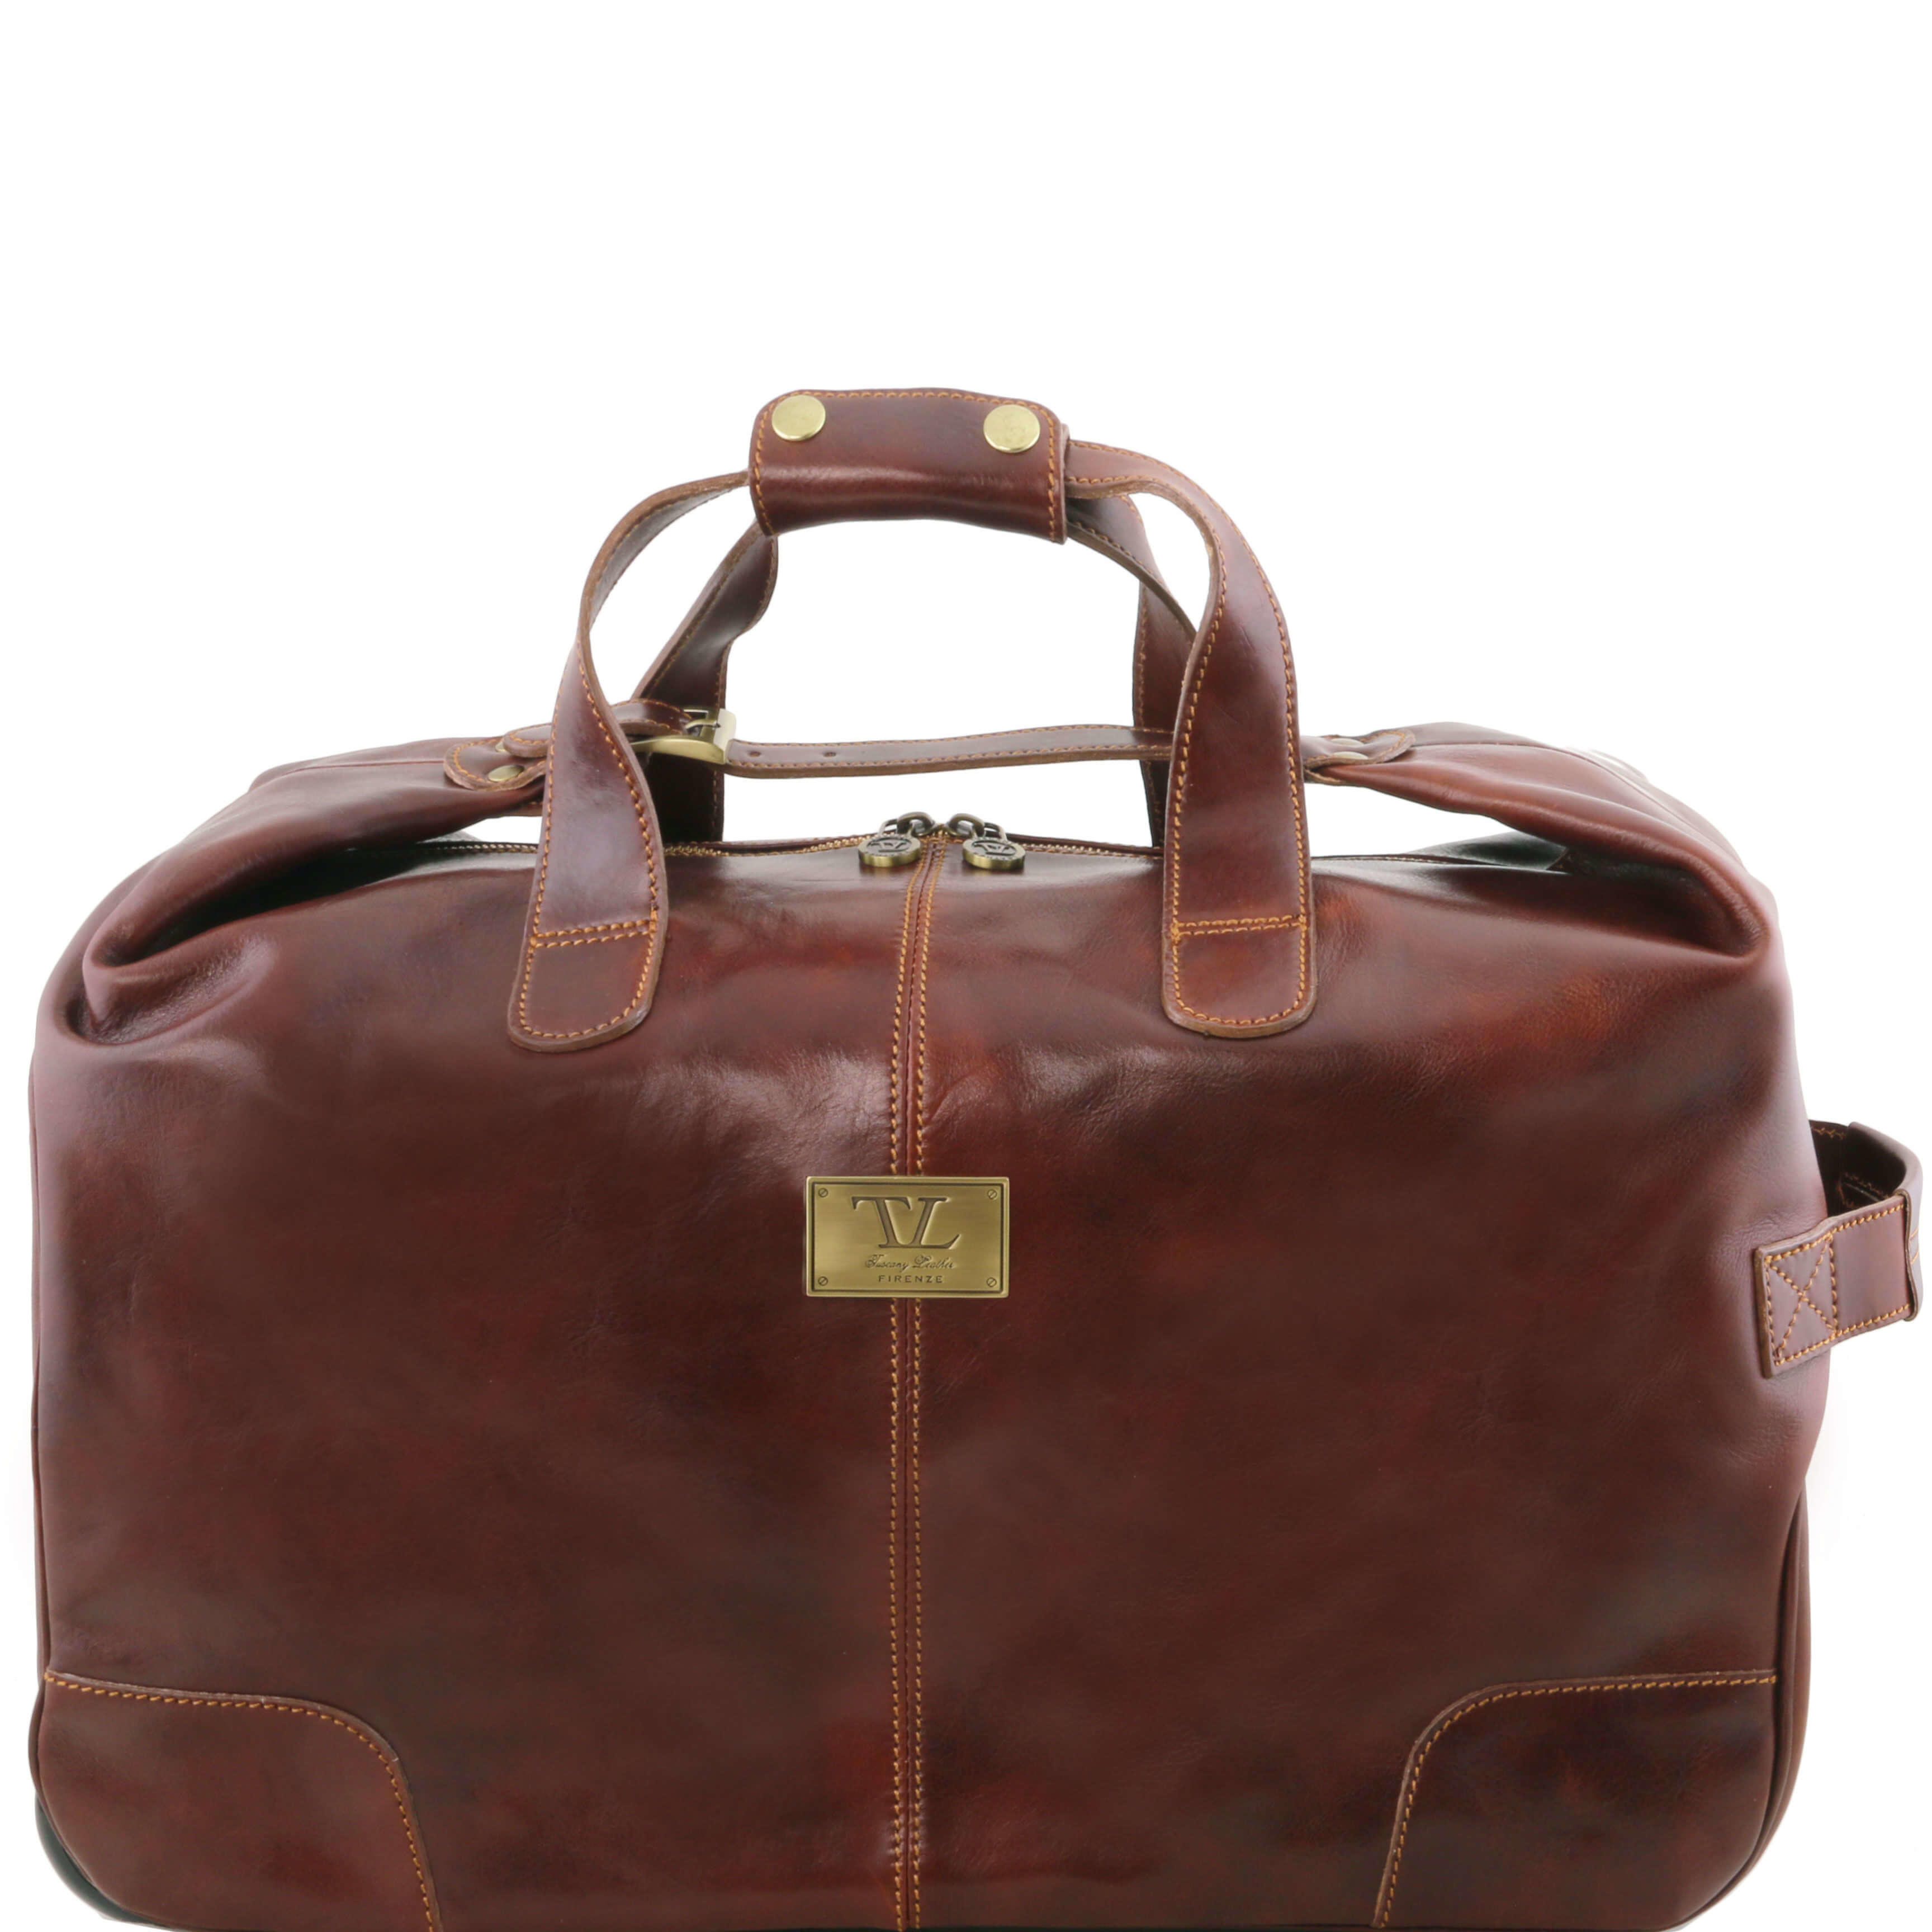 Tuscany Leather Barbados Trolley - Wheeled-Lugguage-Travel-Bag-Holdall-Case - Brown